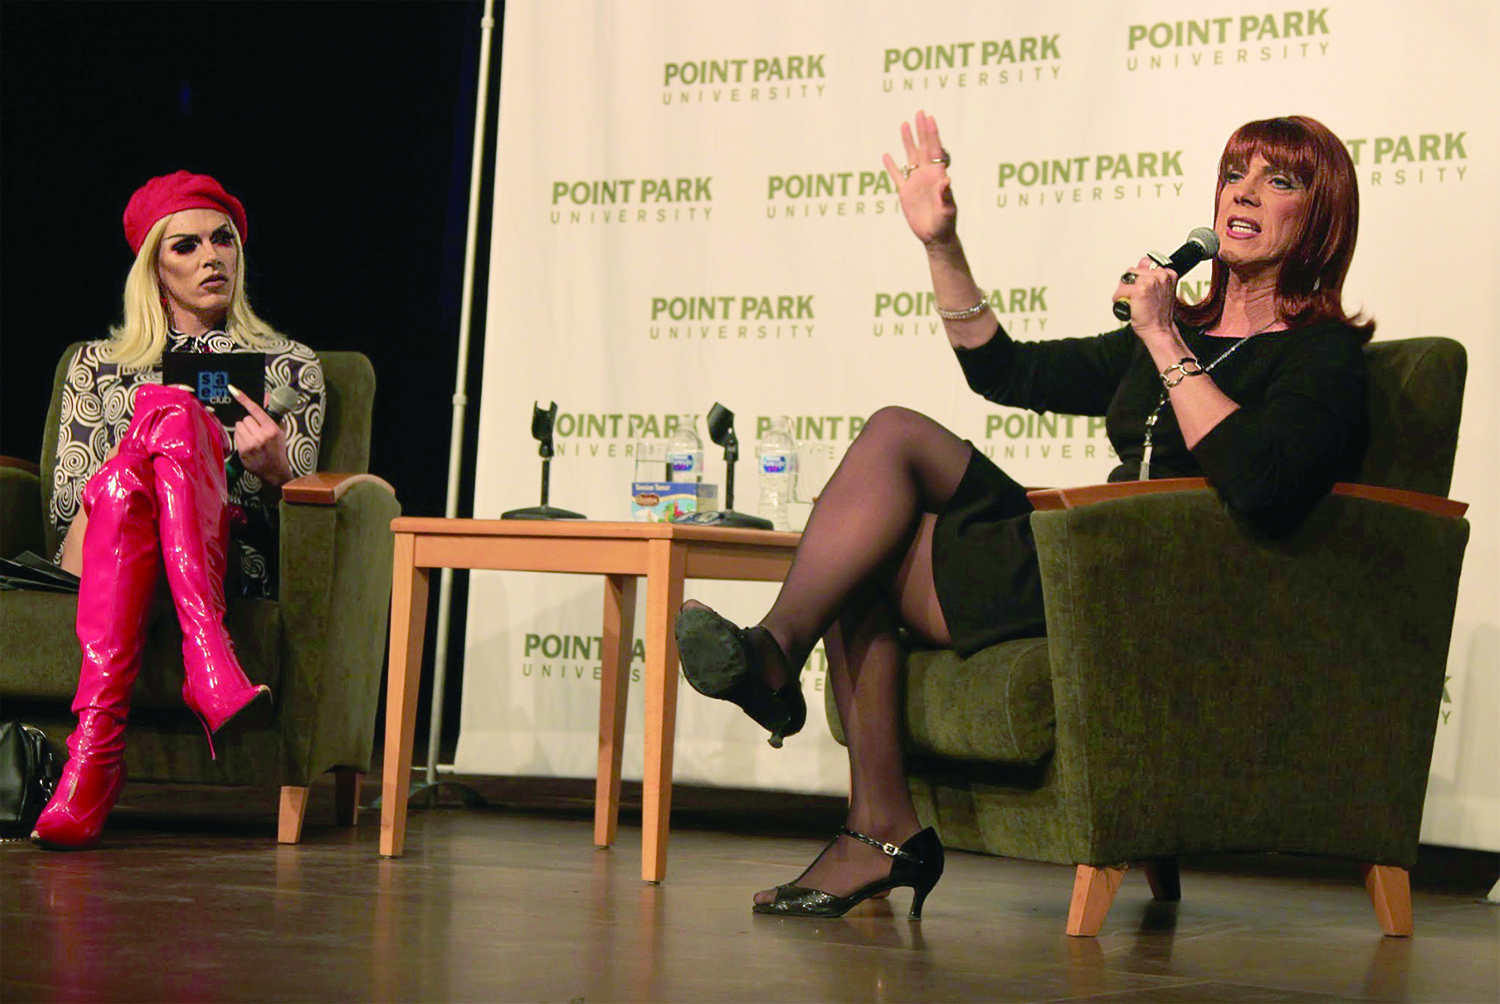 Miss Coco Peru visited Point Park's GRW theater last Thursday to tell stories and give words of wisdom. Miss Peru recalled significant moments of her life, like meeting her husband for the first time on a nude beach in Spain, and coming out to her parents as transgender. Read the full story in the Features section, page 4.